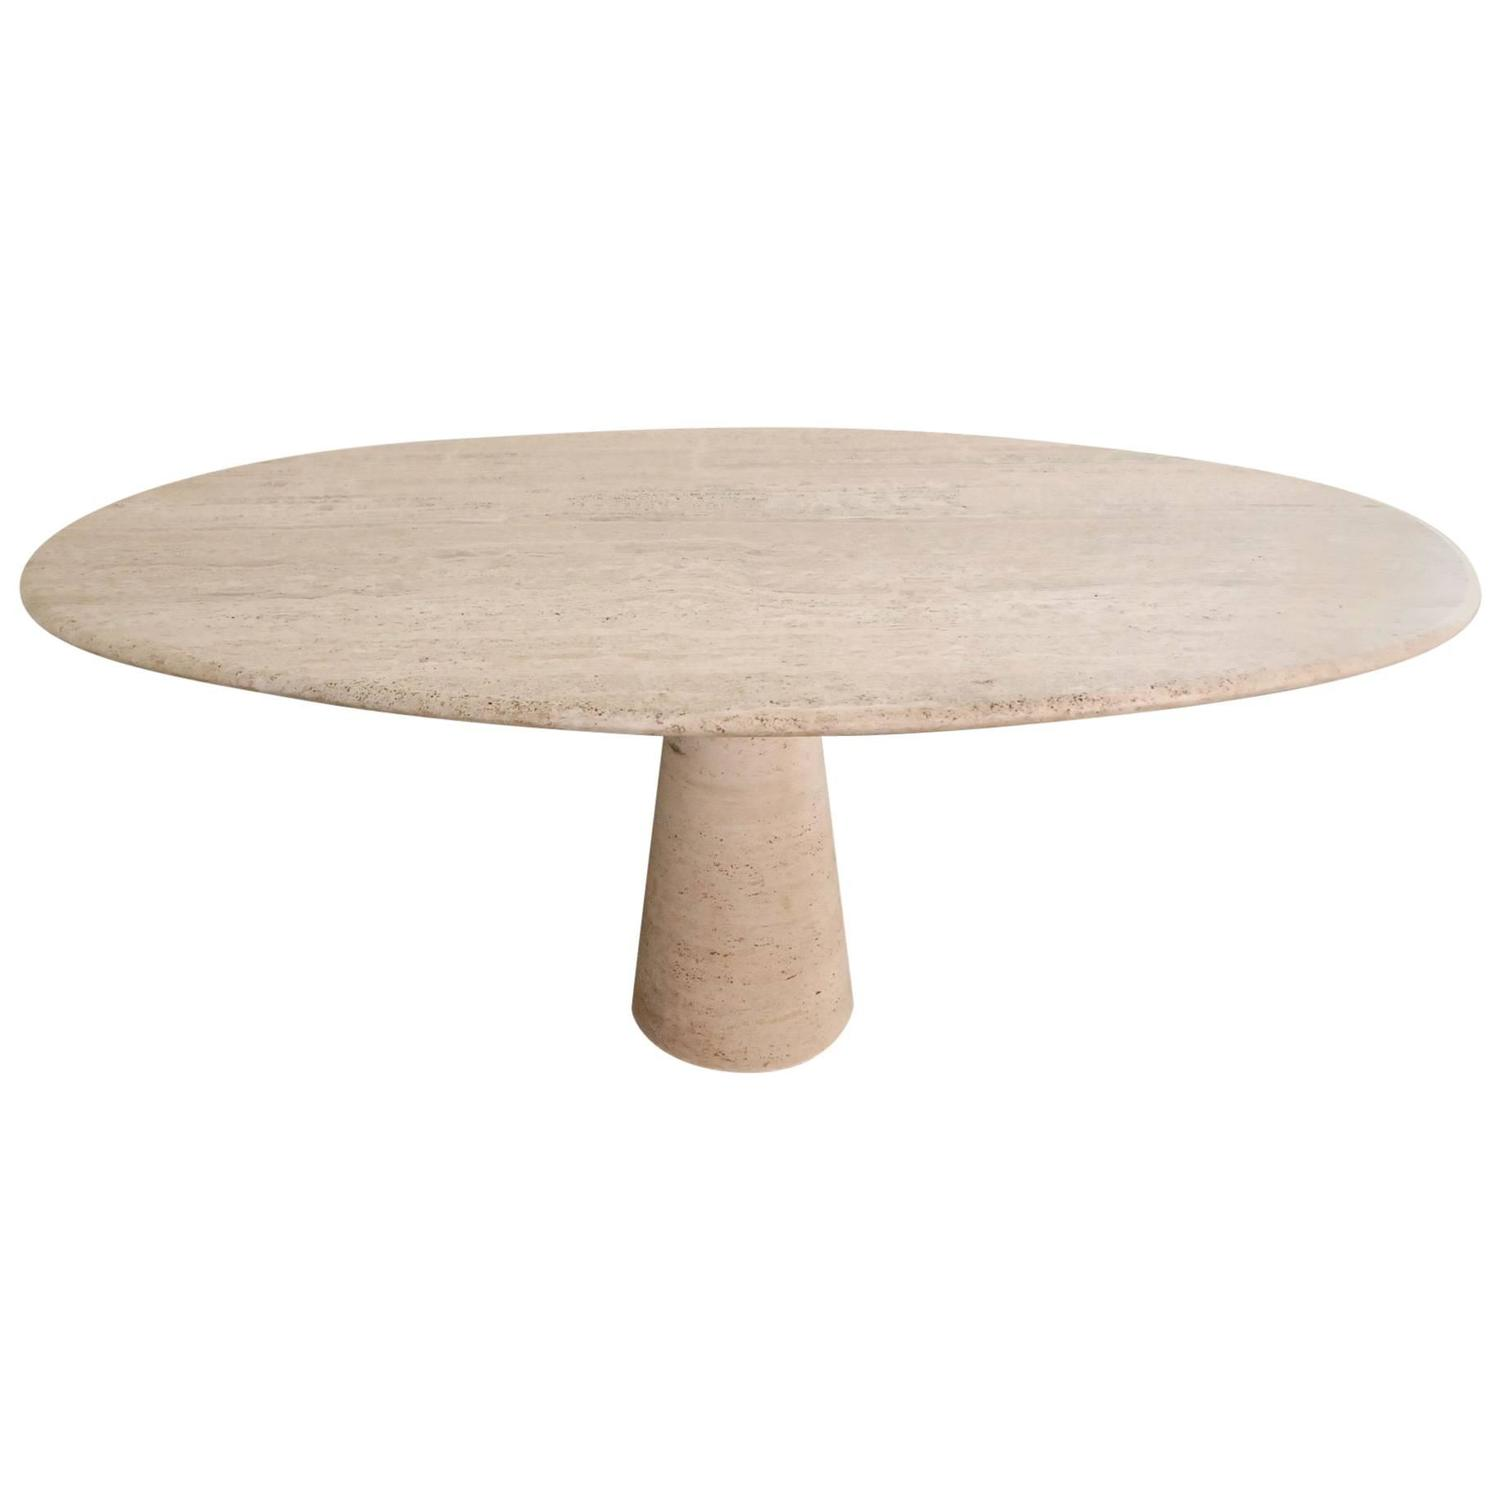 Table Oval Travertine Dining Table at 1stdibs